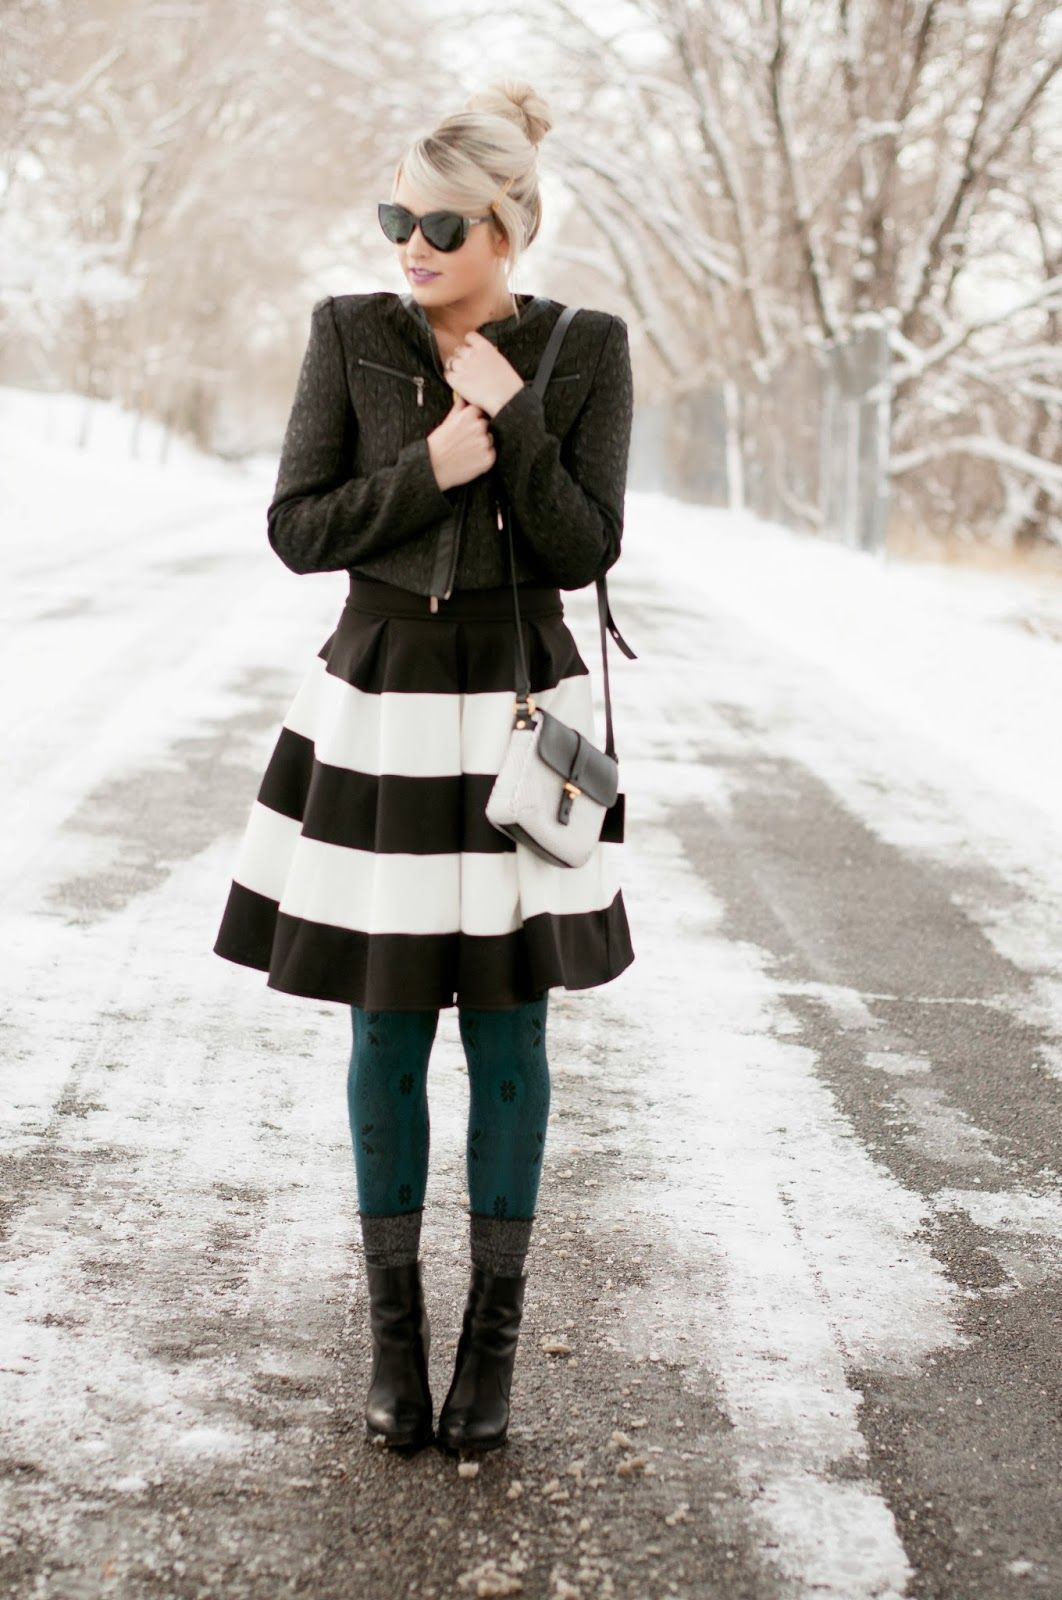 chic black and white for winter (but not with green tights!)